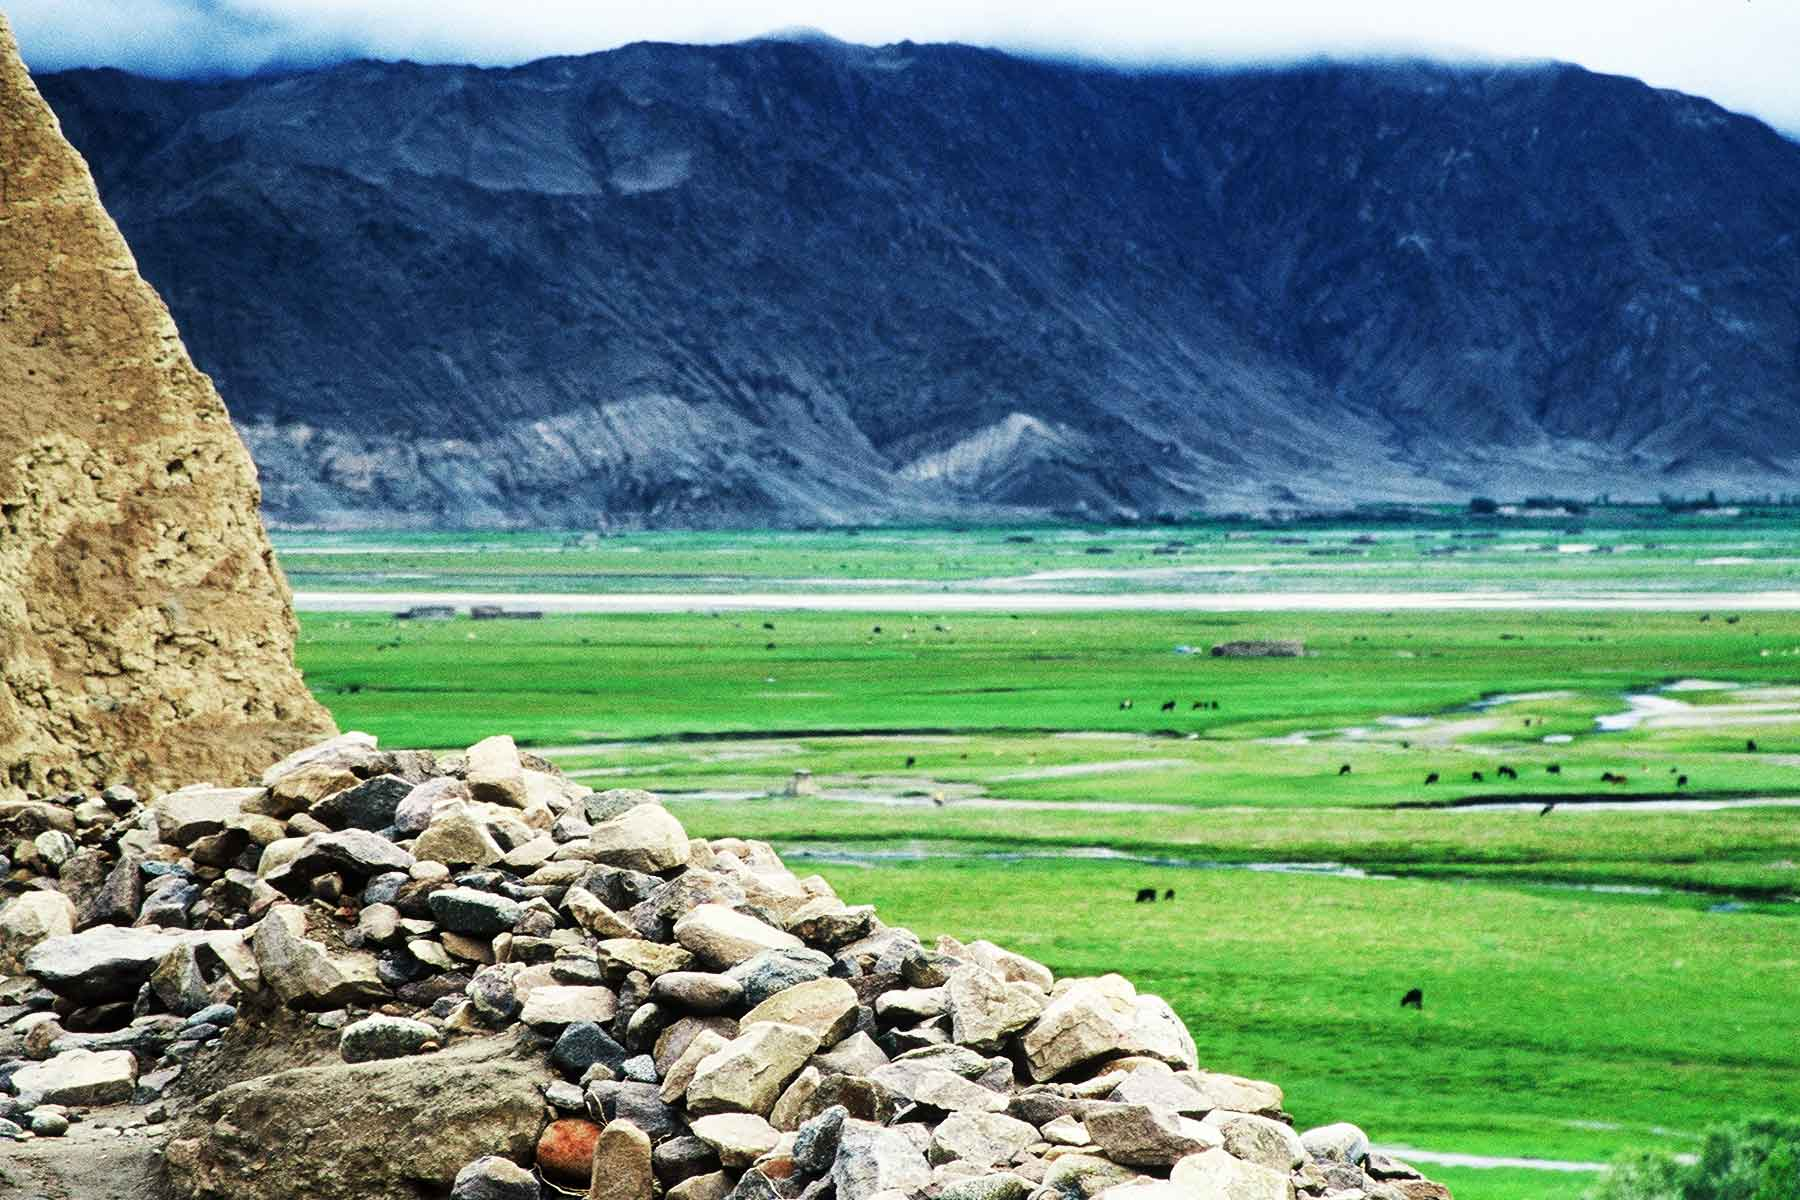 Tashkurgan Tajik Autonomous County, Xinjiang, China - Dr Steven Martin - Silk Road Research 2001